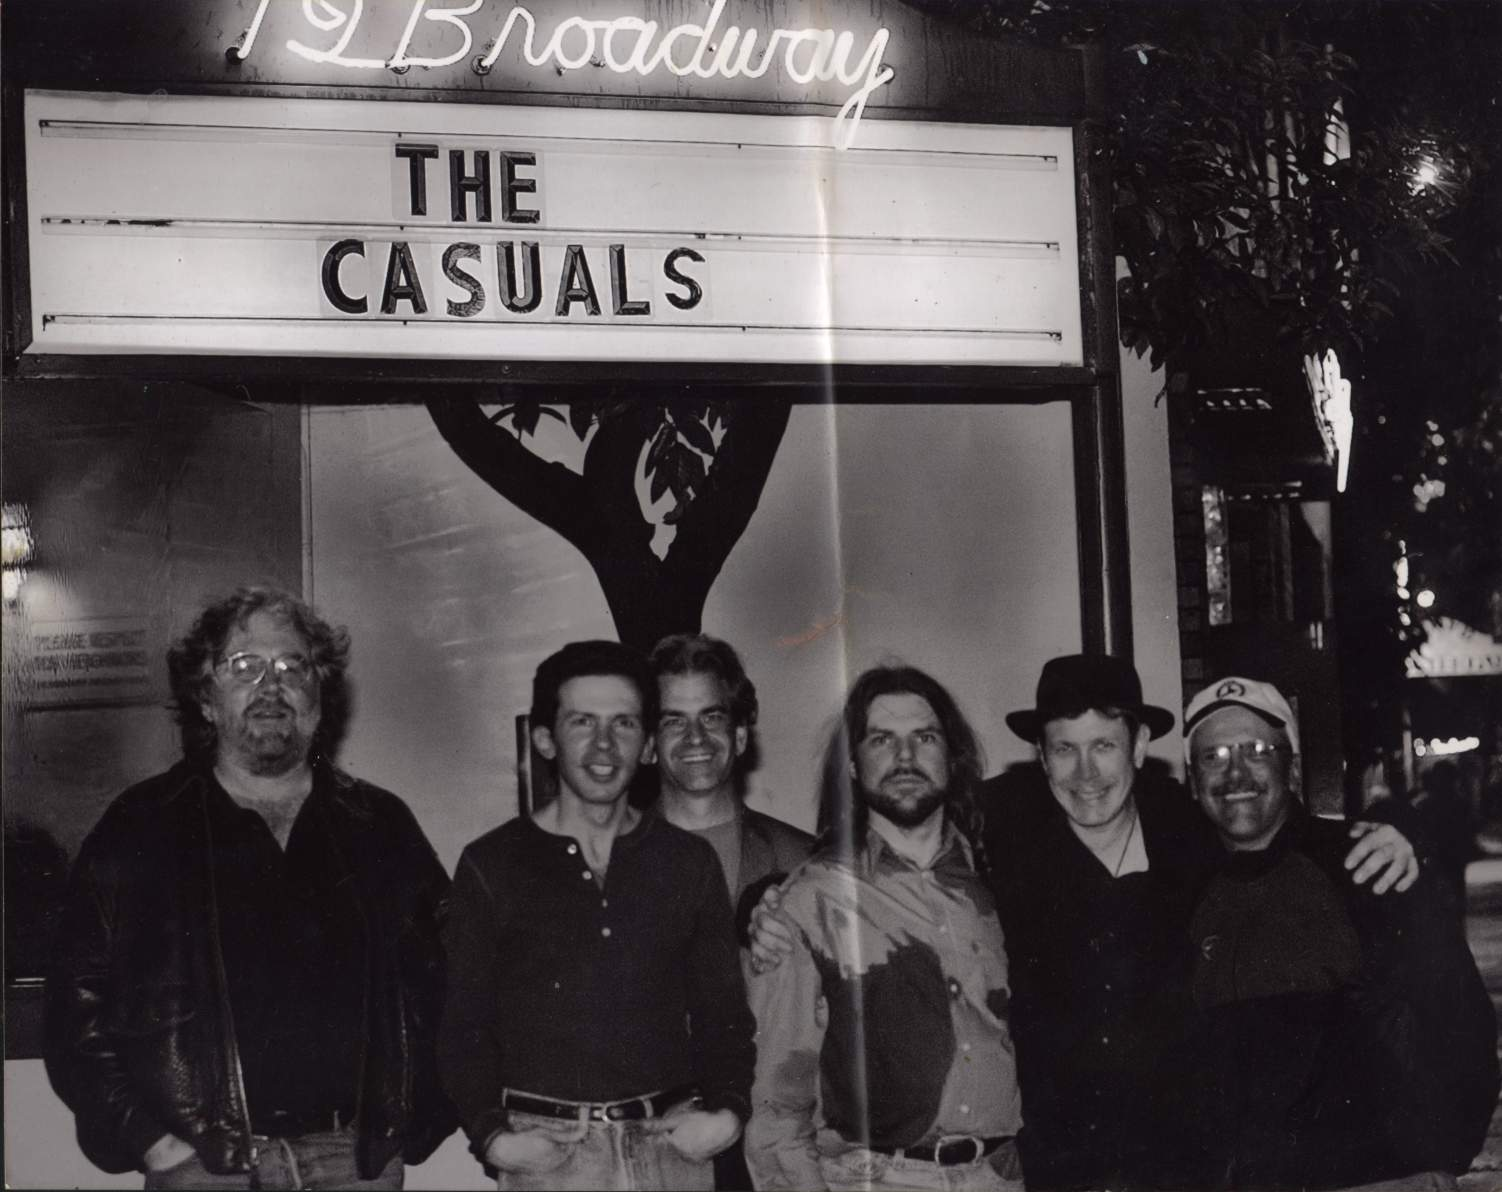 The Casuals at 19 Broadway